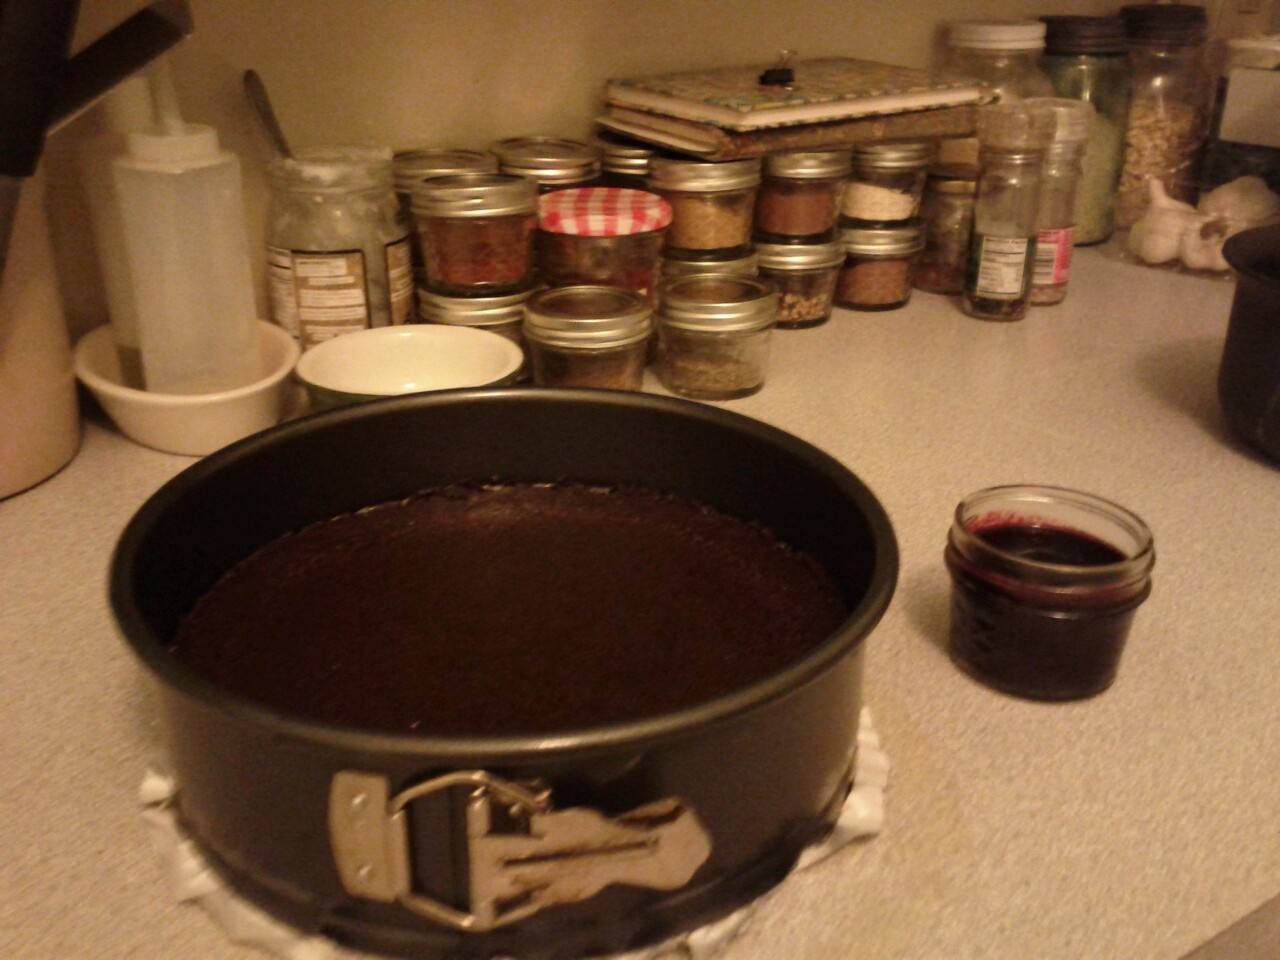 Happening Now : Baking Chocolate Regal with Blackberry Coulis. No sugar or flour. FTW! Ok to be perfectly honest, I used 85% Cacao chocolate, so there is some trace sugar.